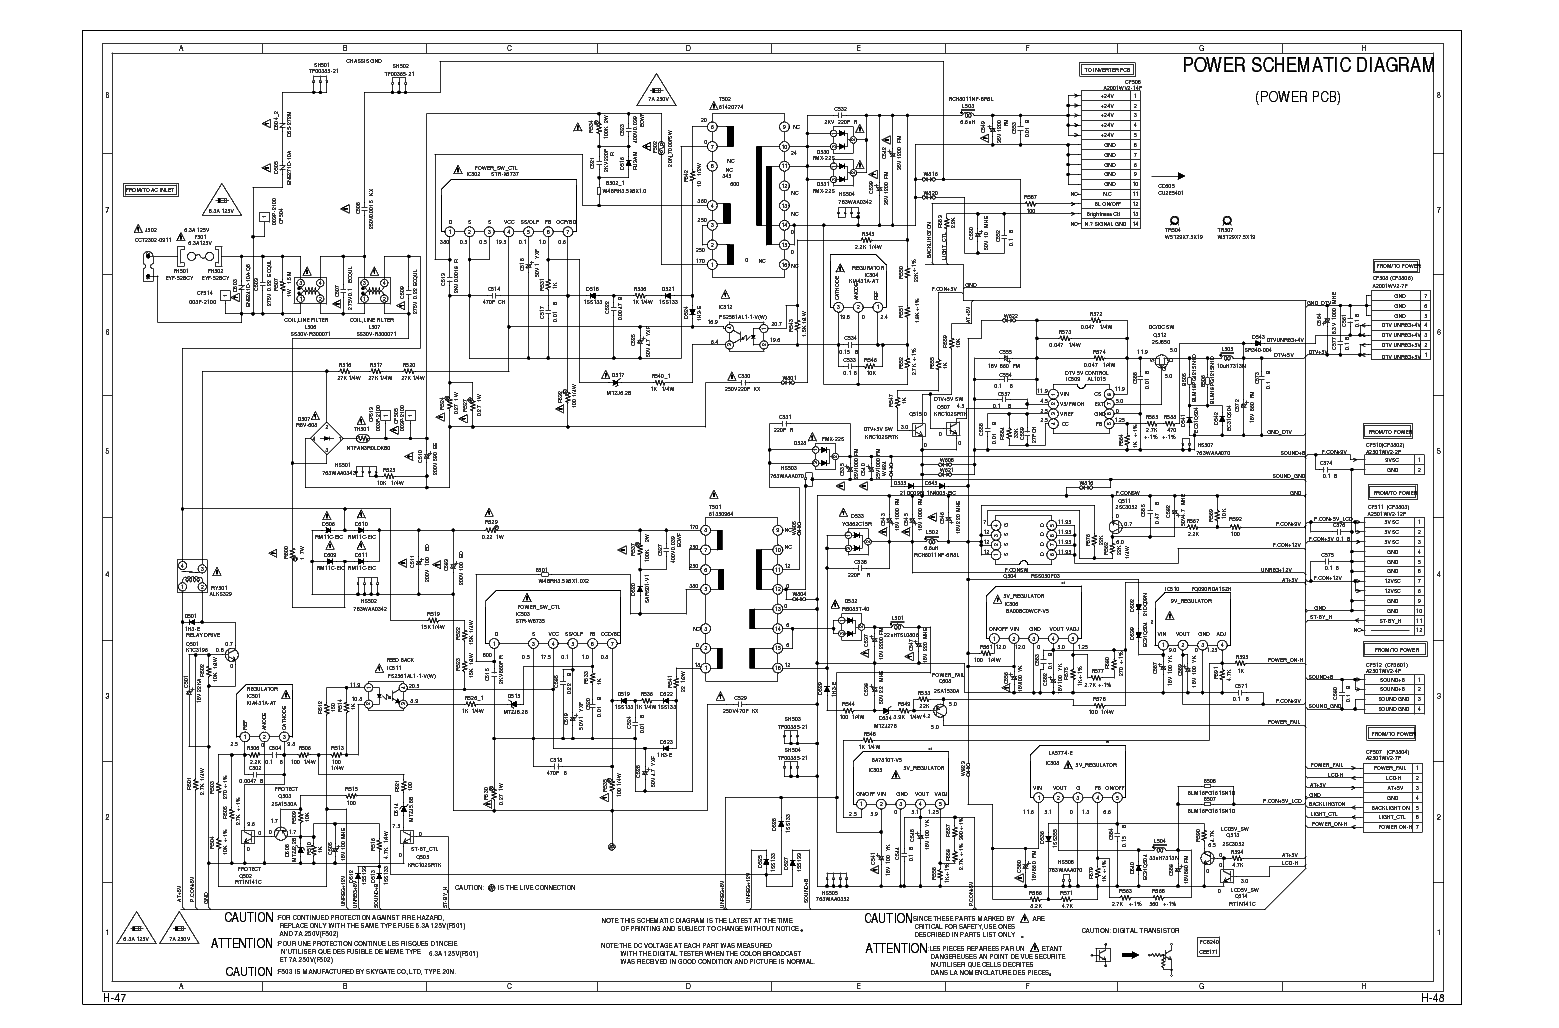 Sharp Lc32sh20u Power Schematic Sch Service Manual